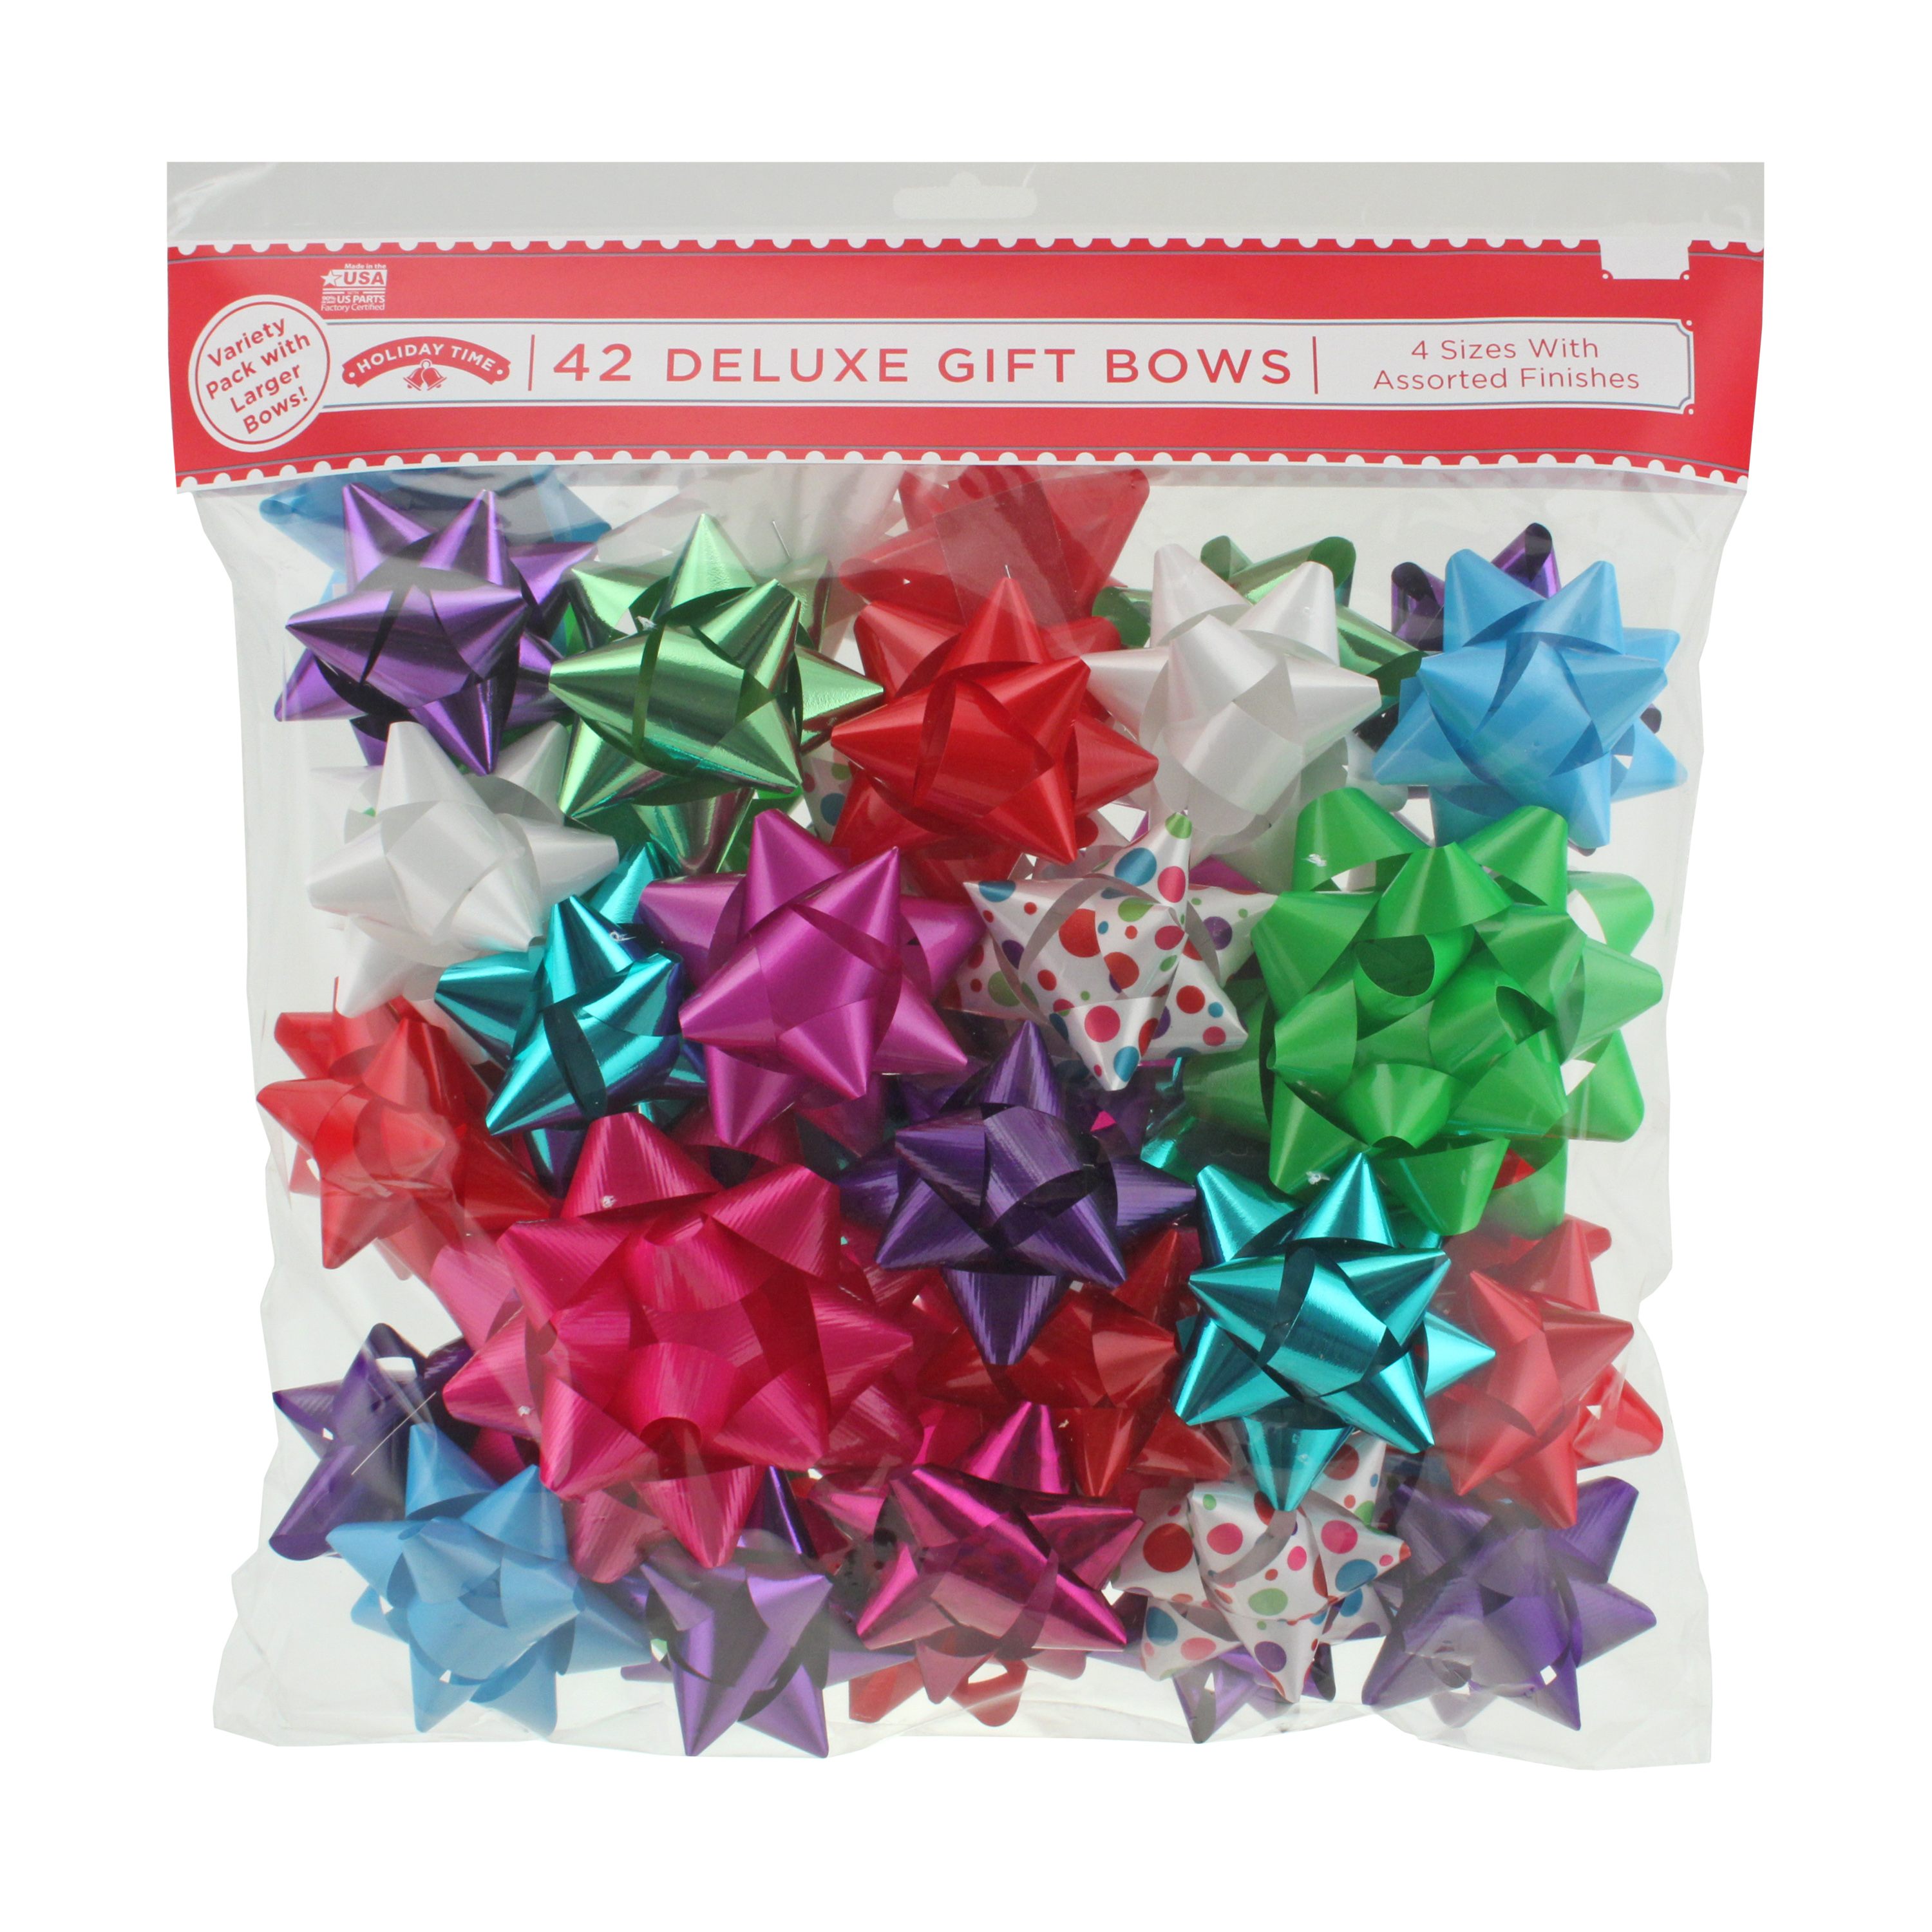 42 COUNT GIFT BOW ASSORTMENT - MULTI BRIGHTS